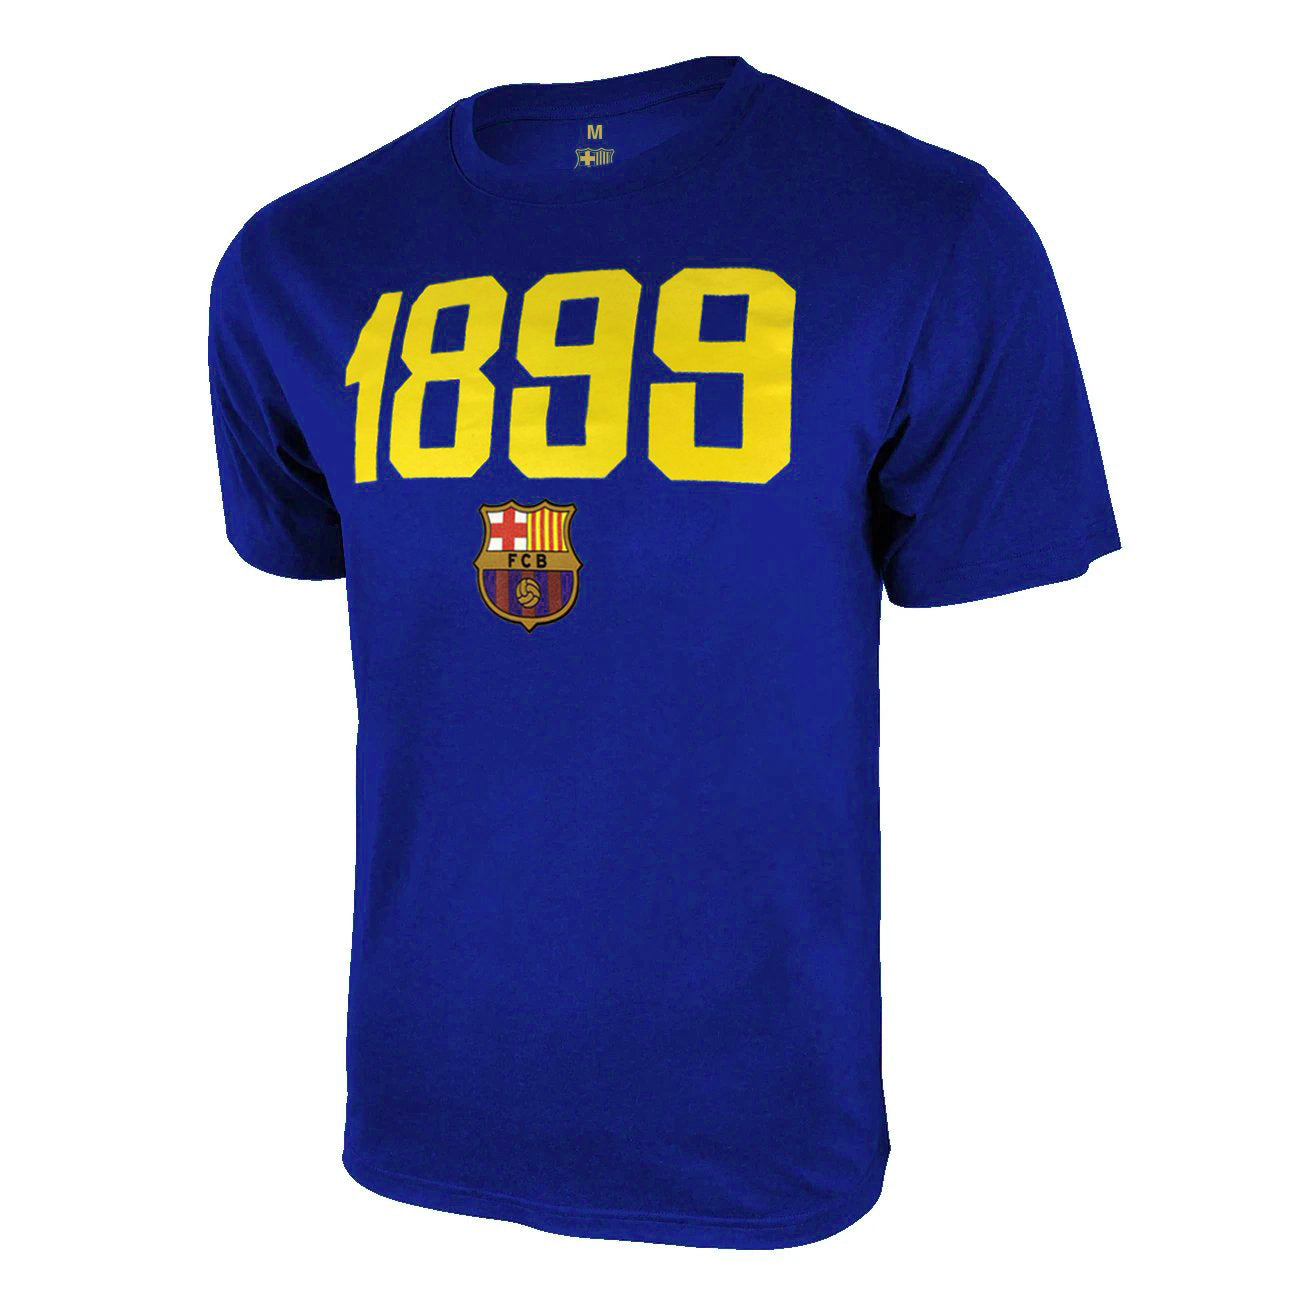 FC Barcelona 1899 T-Shirt - Black by Icon Sports